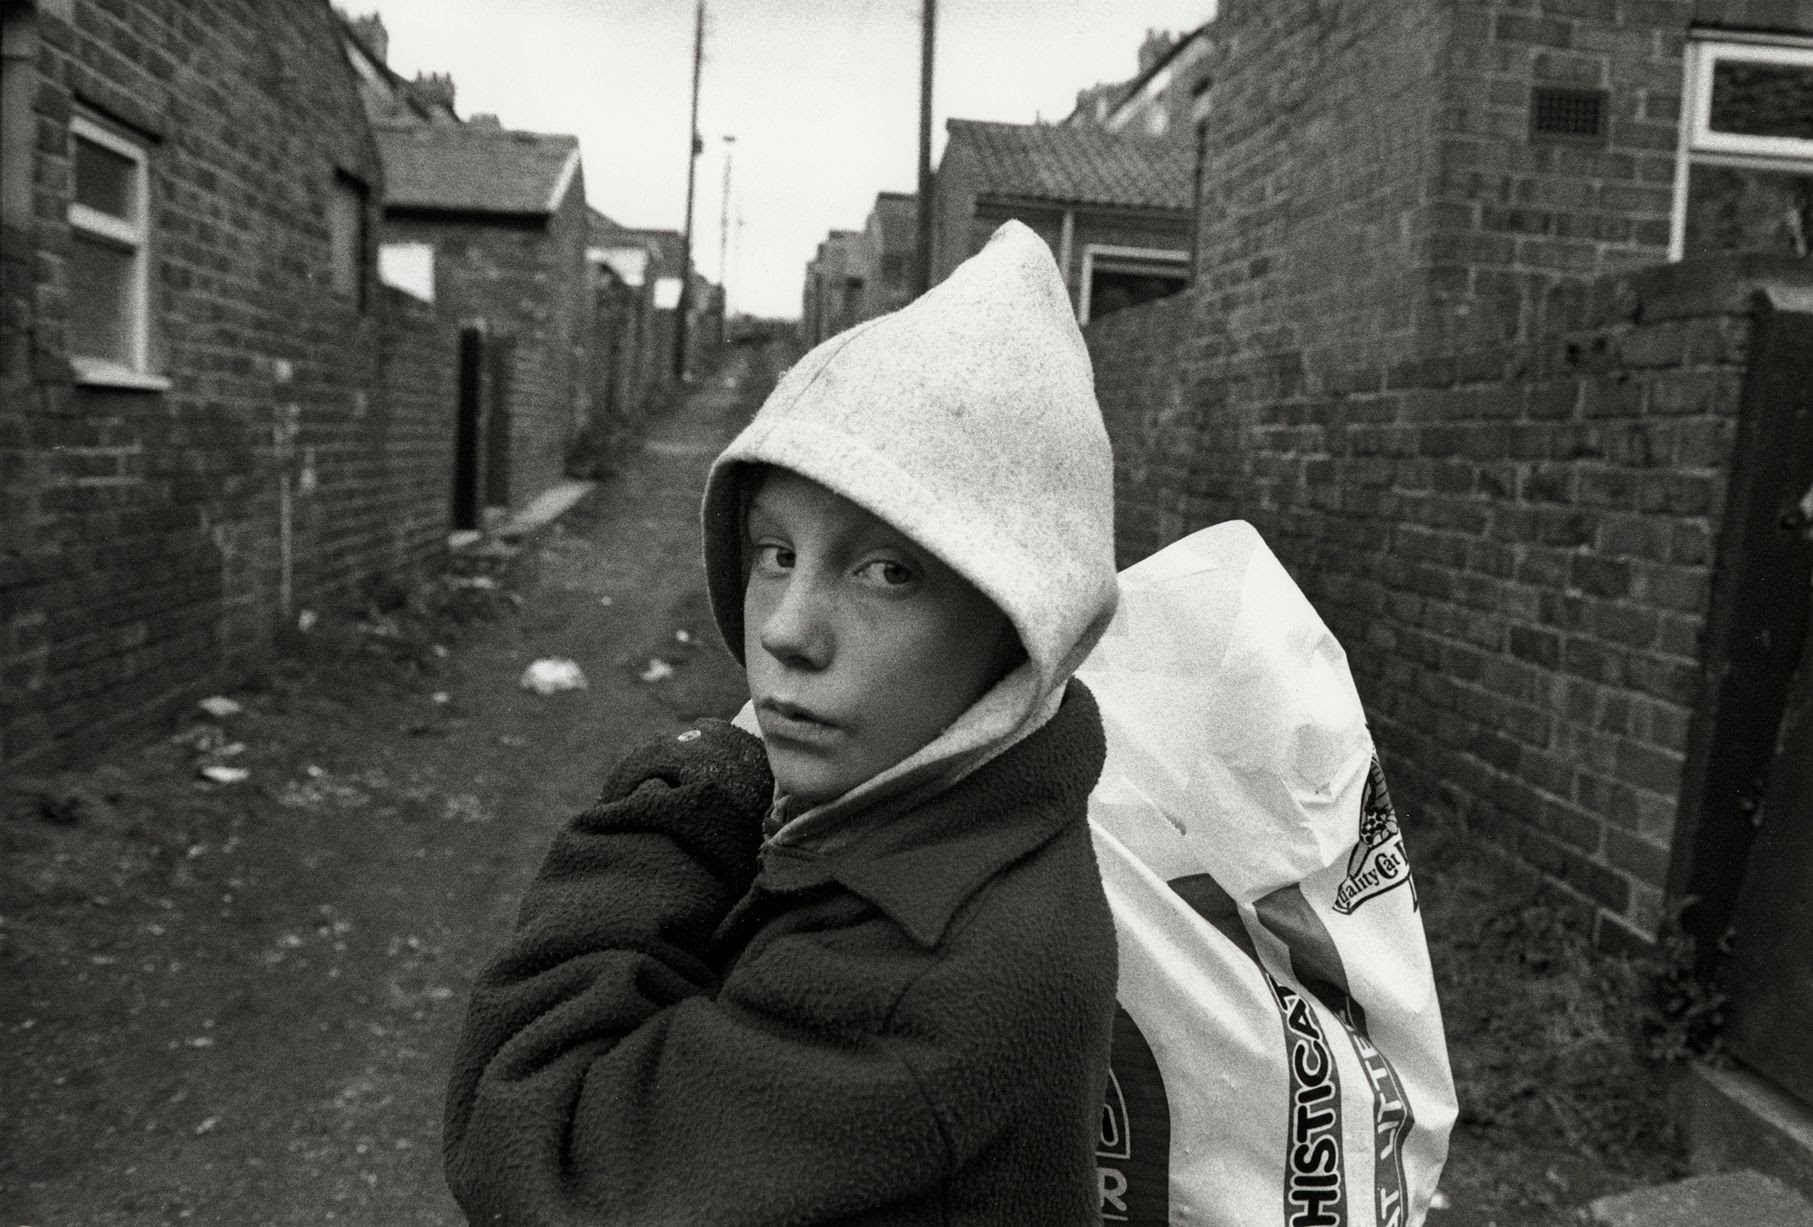 Rookhope, County Durham, 1995, by Jindrich Streit, from the exhibition For Ever Amber at Newcastle's Laing Art Gallery